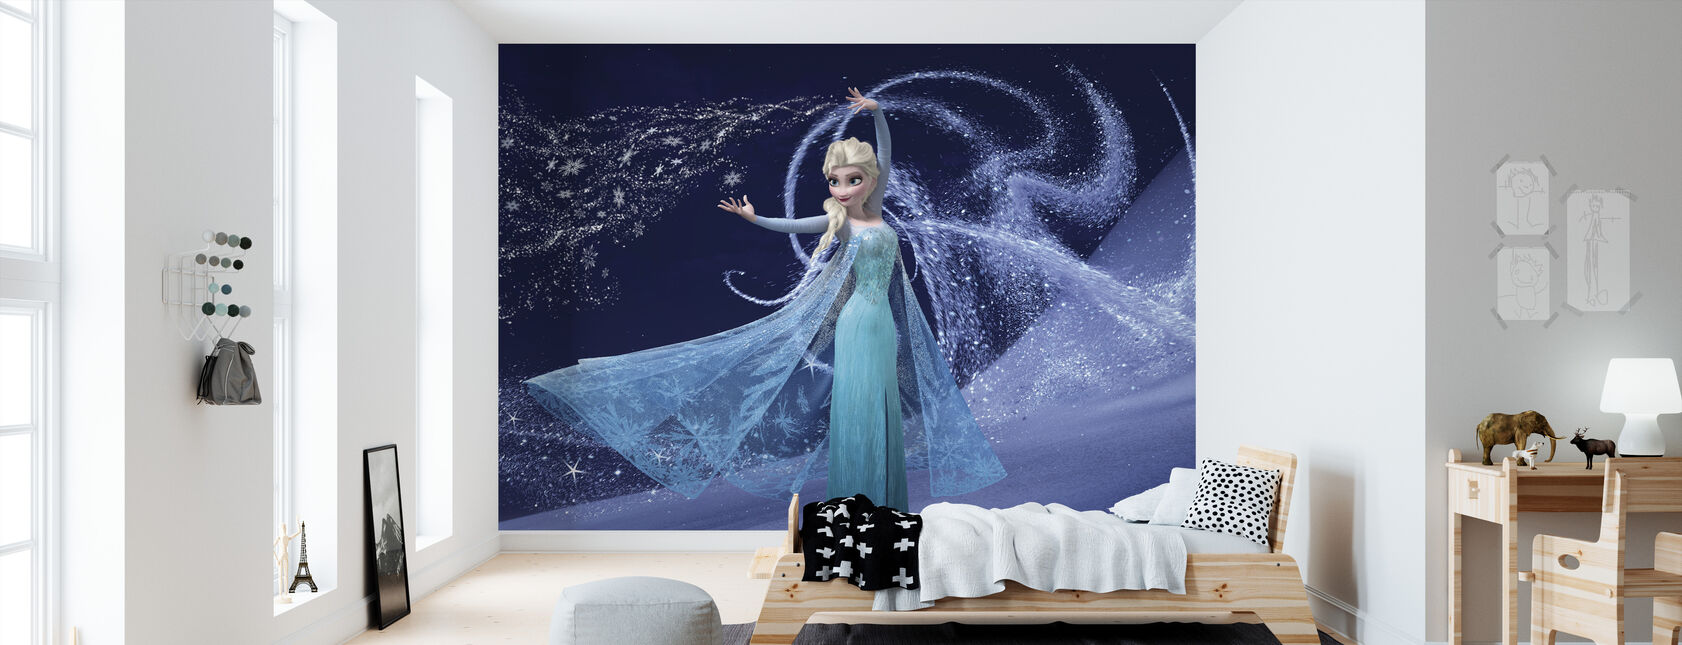 Frosset - Magic Elsa - Tapet - Barnerom